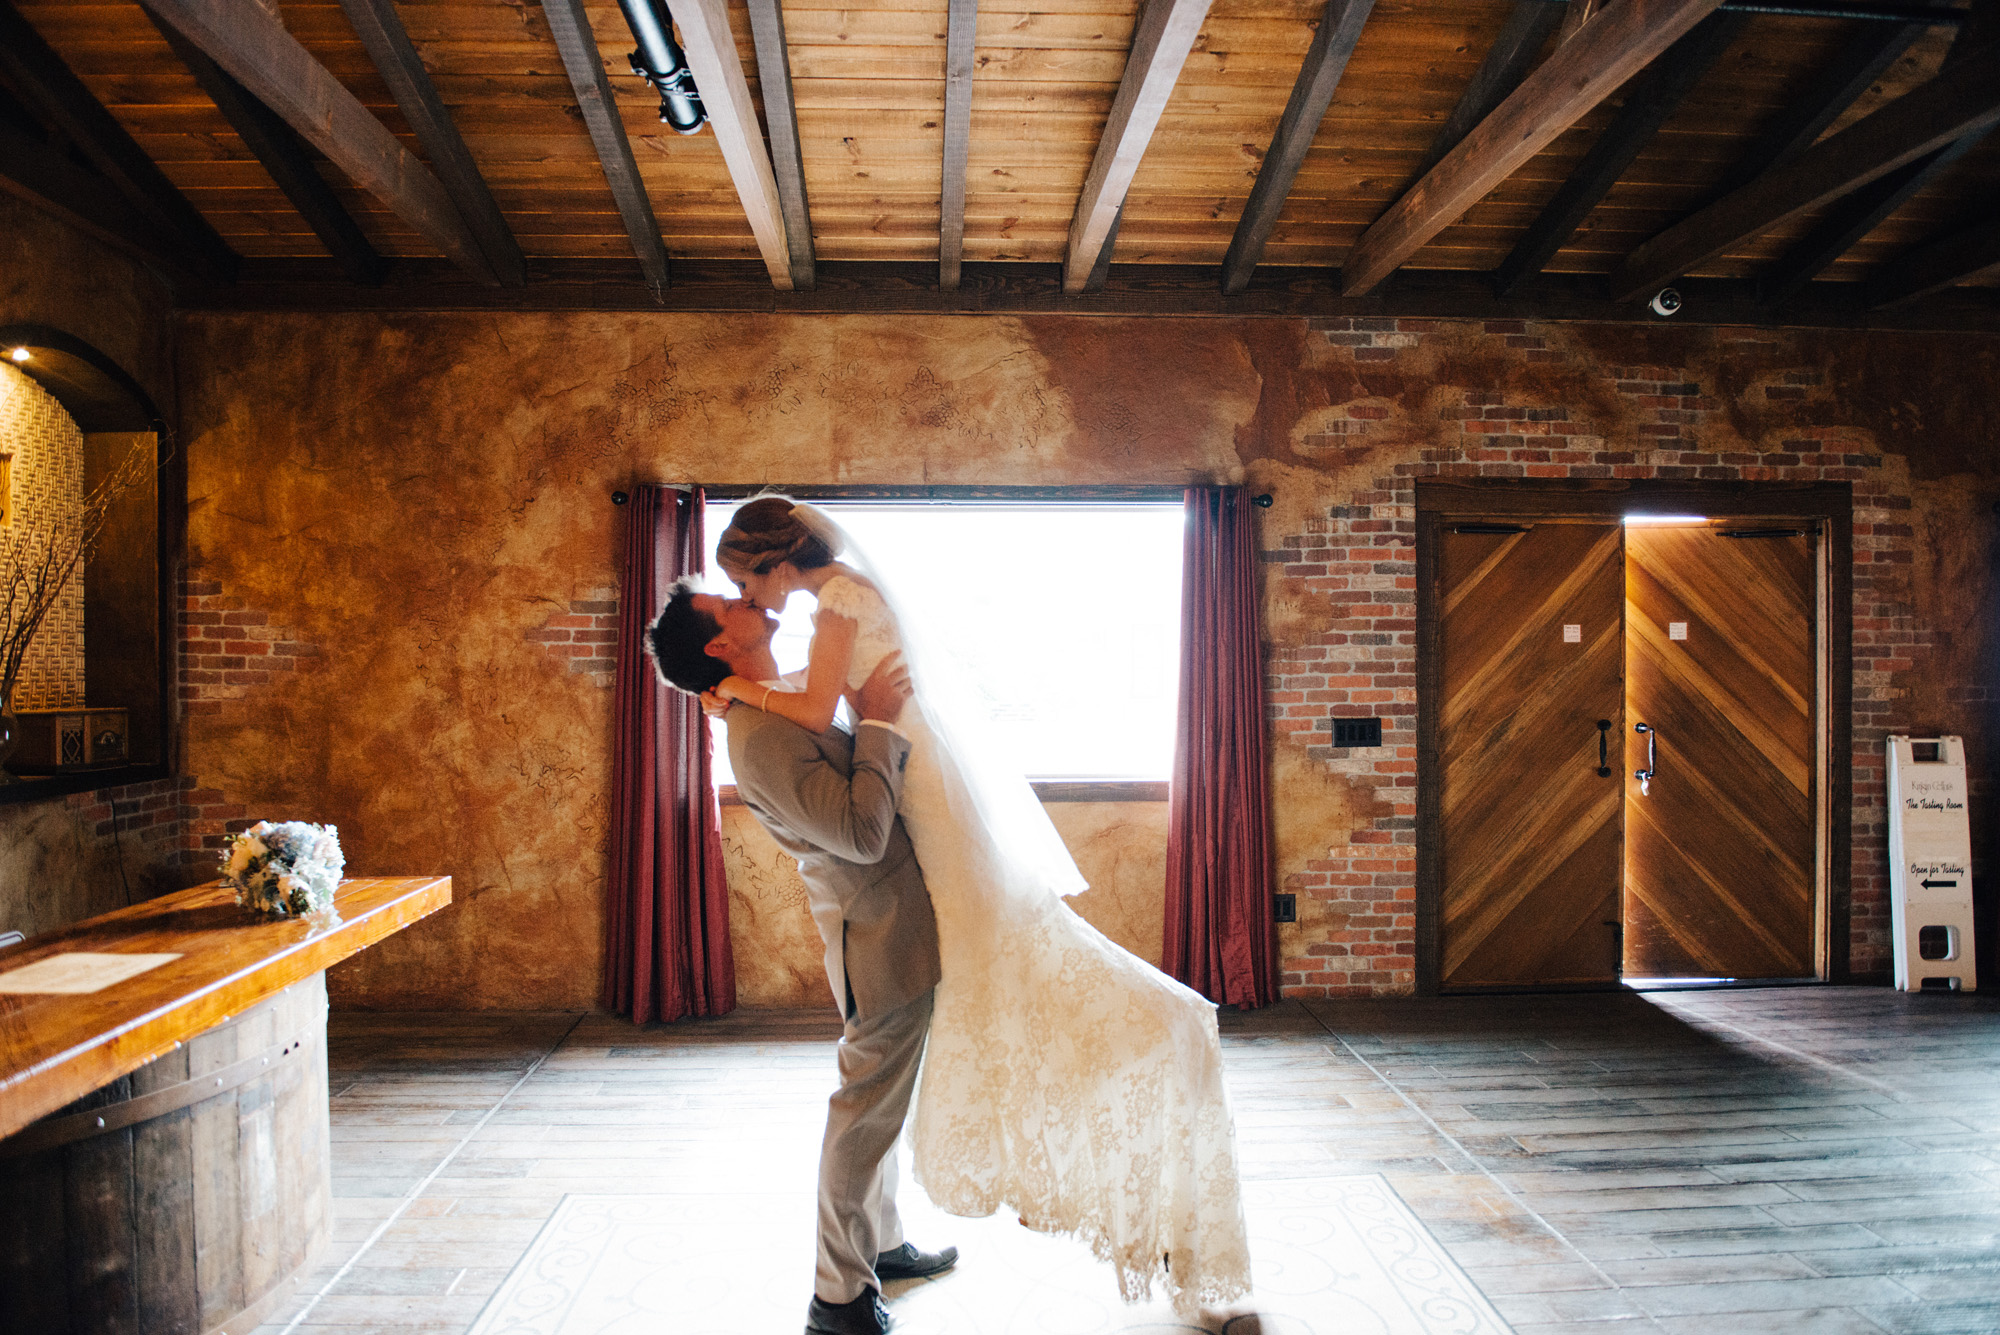 Vendors Venue Kirigin Cellars | Catering Heavys Grill | Cake I Do Wedding Cakes | DJ Kelly Pro | Rentals Pro Prep Events | Wedding Dress Bay Area ... & Kirigin Cellars Wedding Photography u2013 Laura u0026 Josh: Married ...